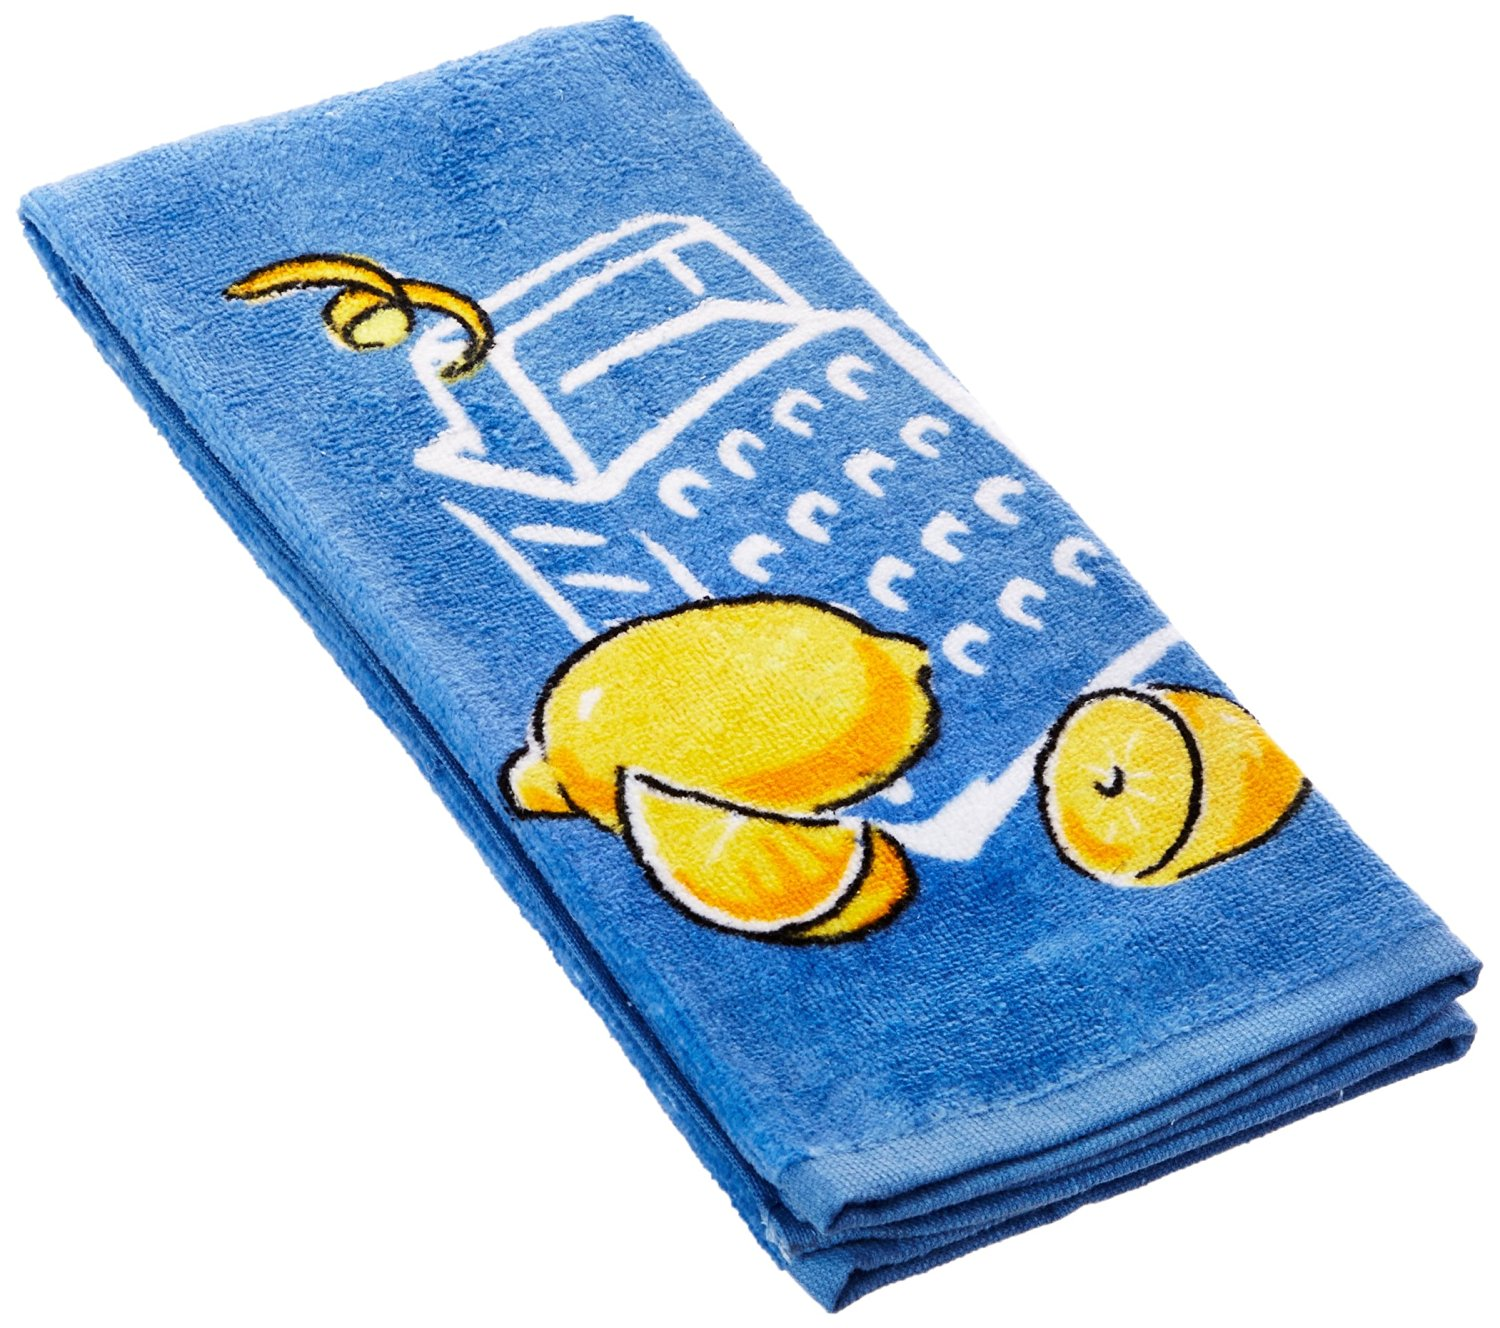 Kay Dee Designs Cook Collection Cotton Fiber Reactive Towel, 16 by 26-Inch, Zest